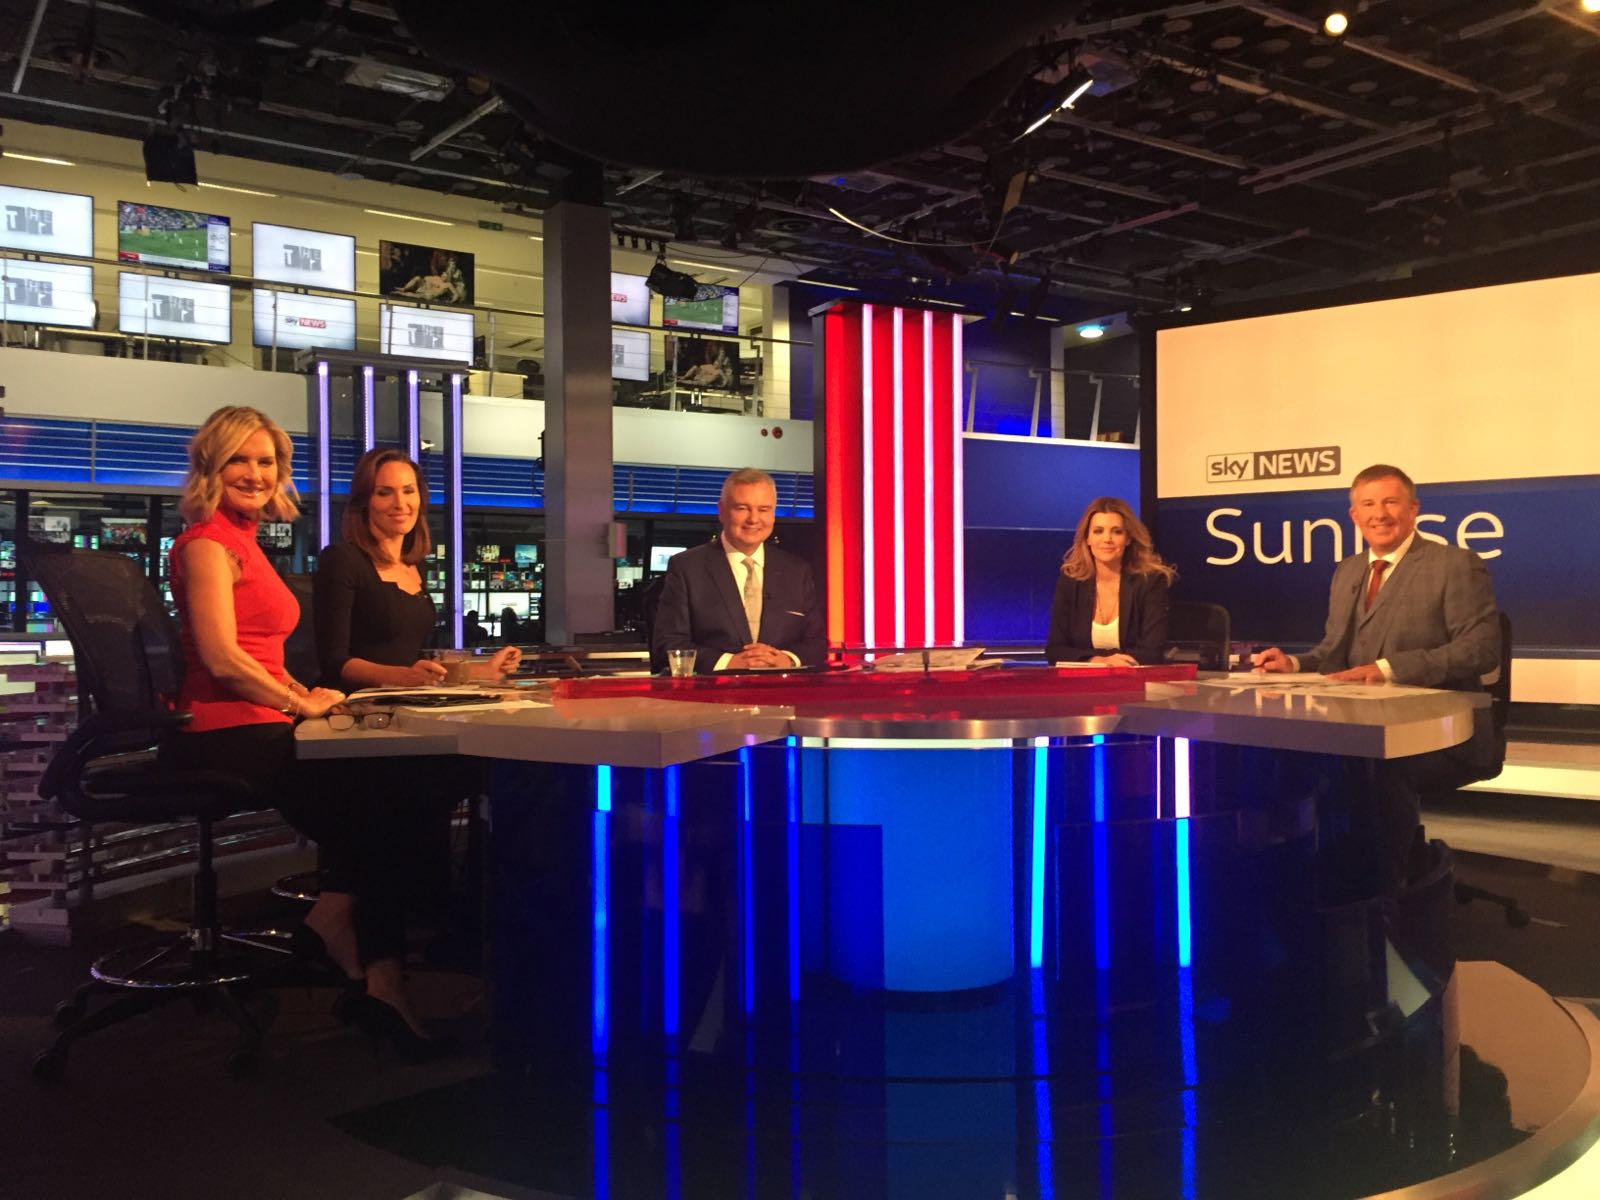 live tv interview training scotland pink elephant communications' bill mcfarlan on sky news sunrise eamonn holmes.